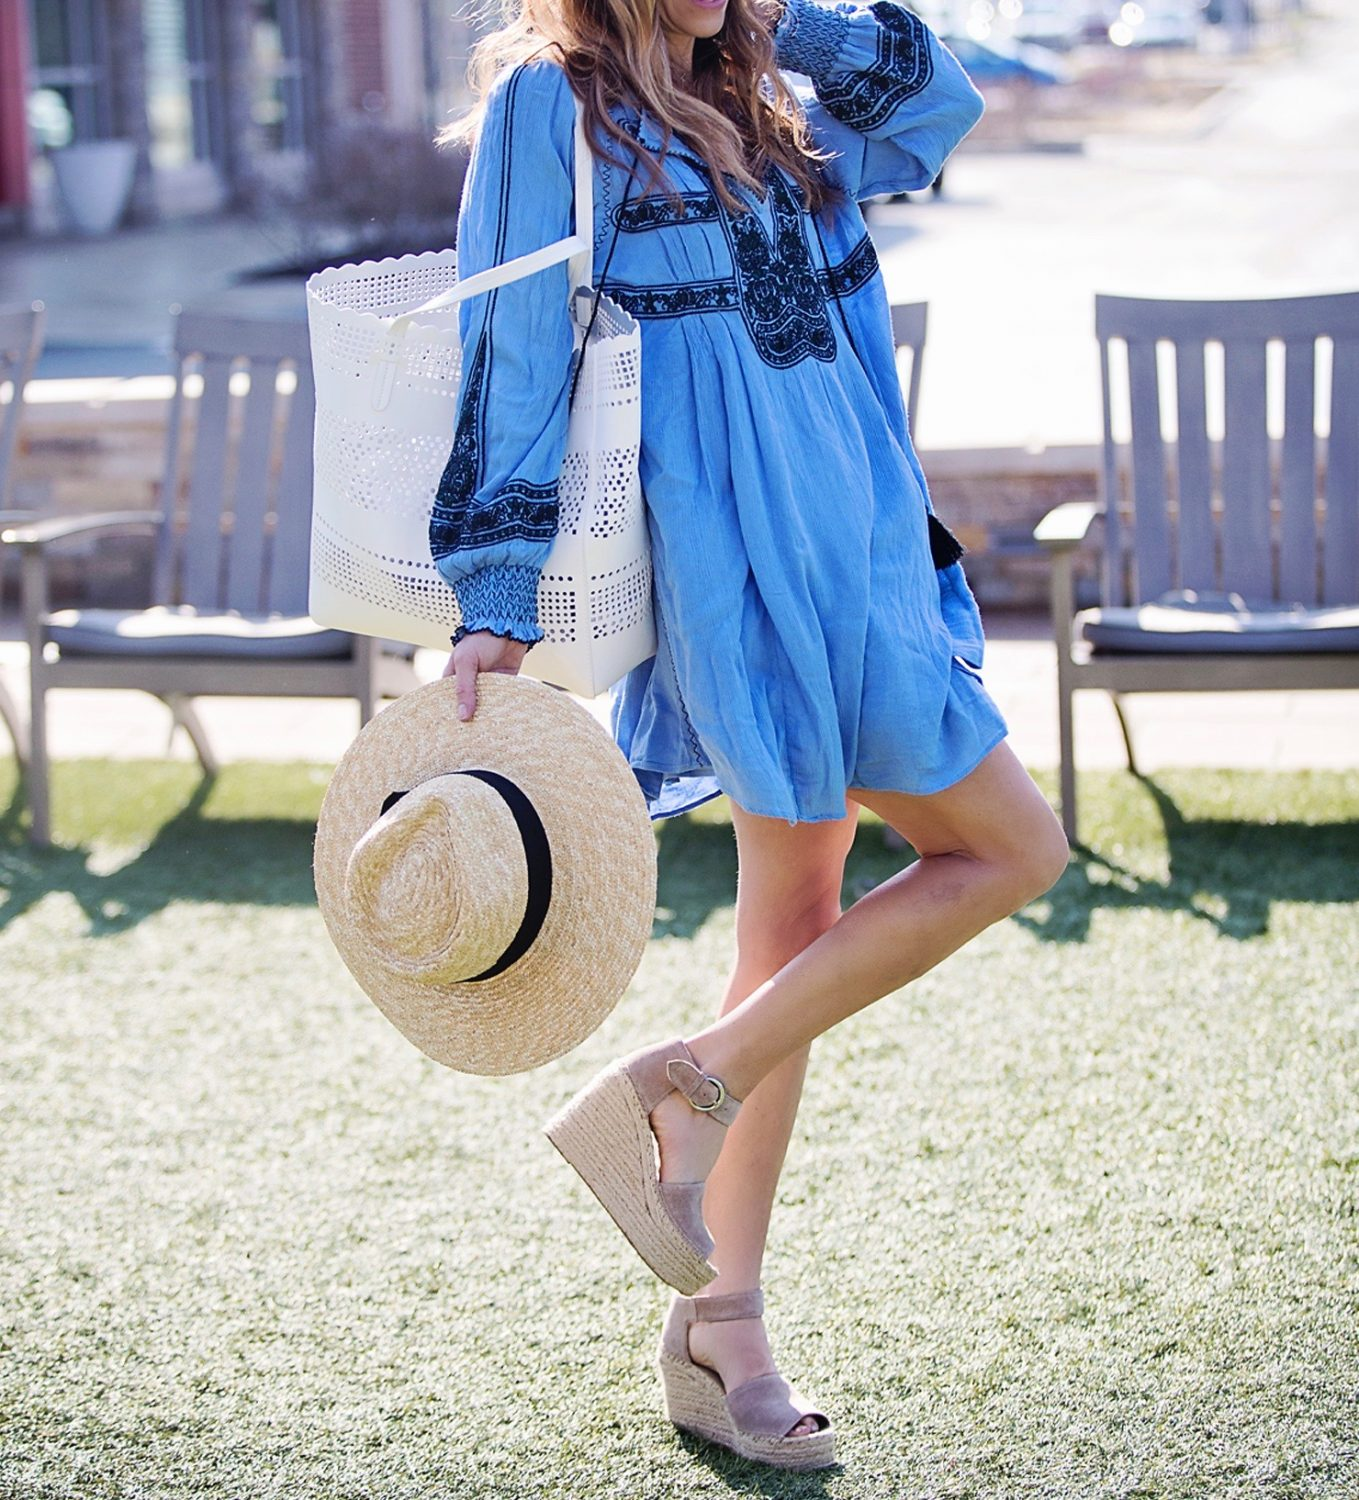 The Motherchic wearing free people dress